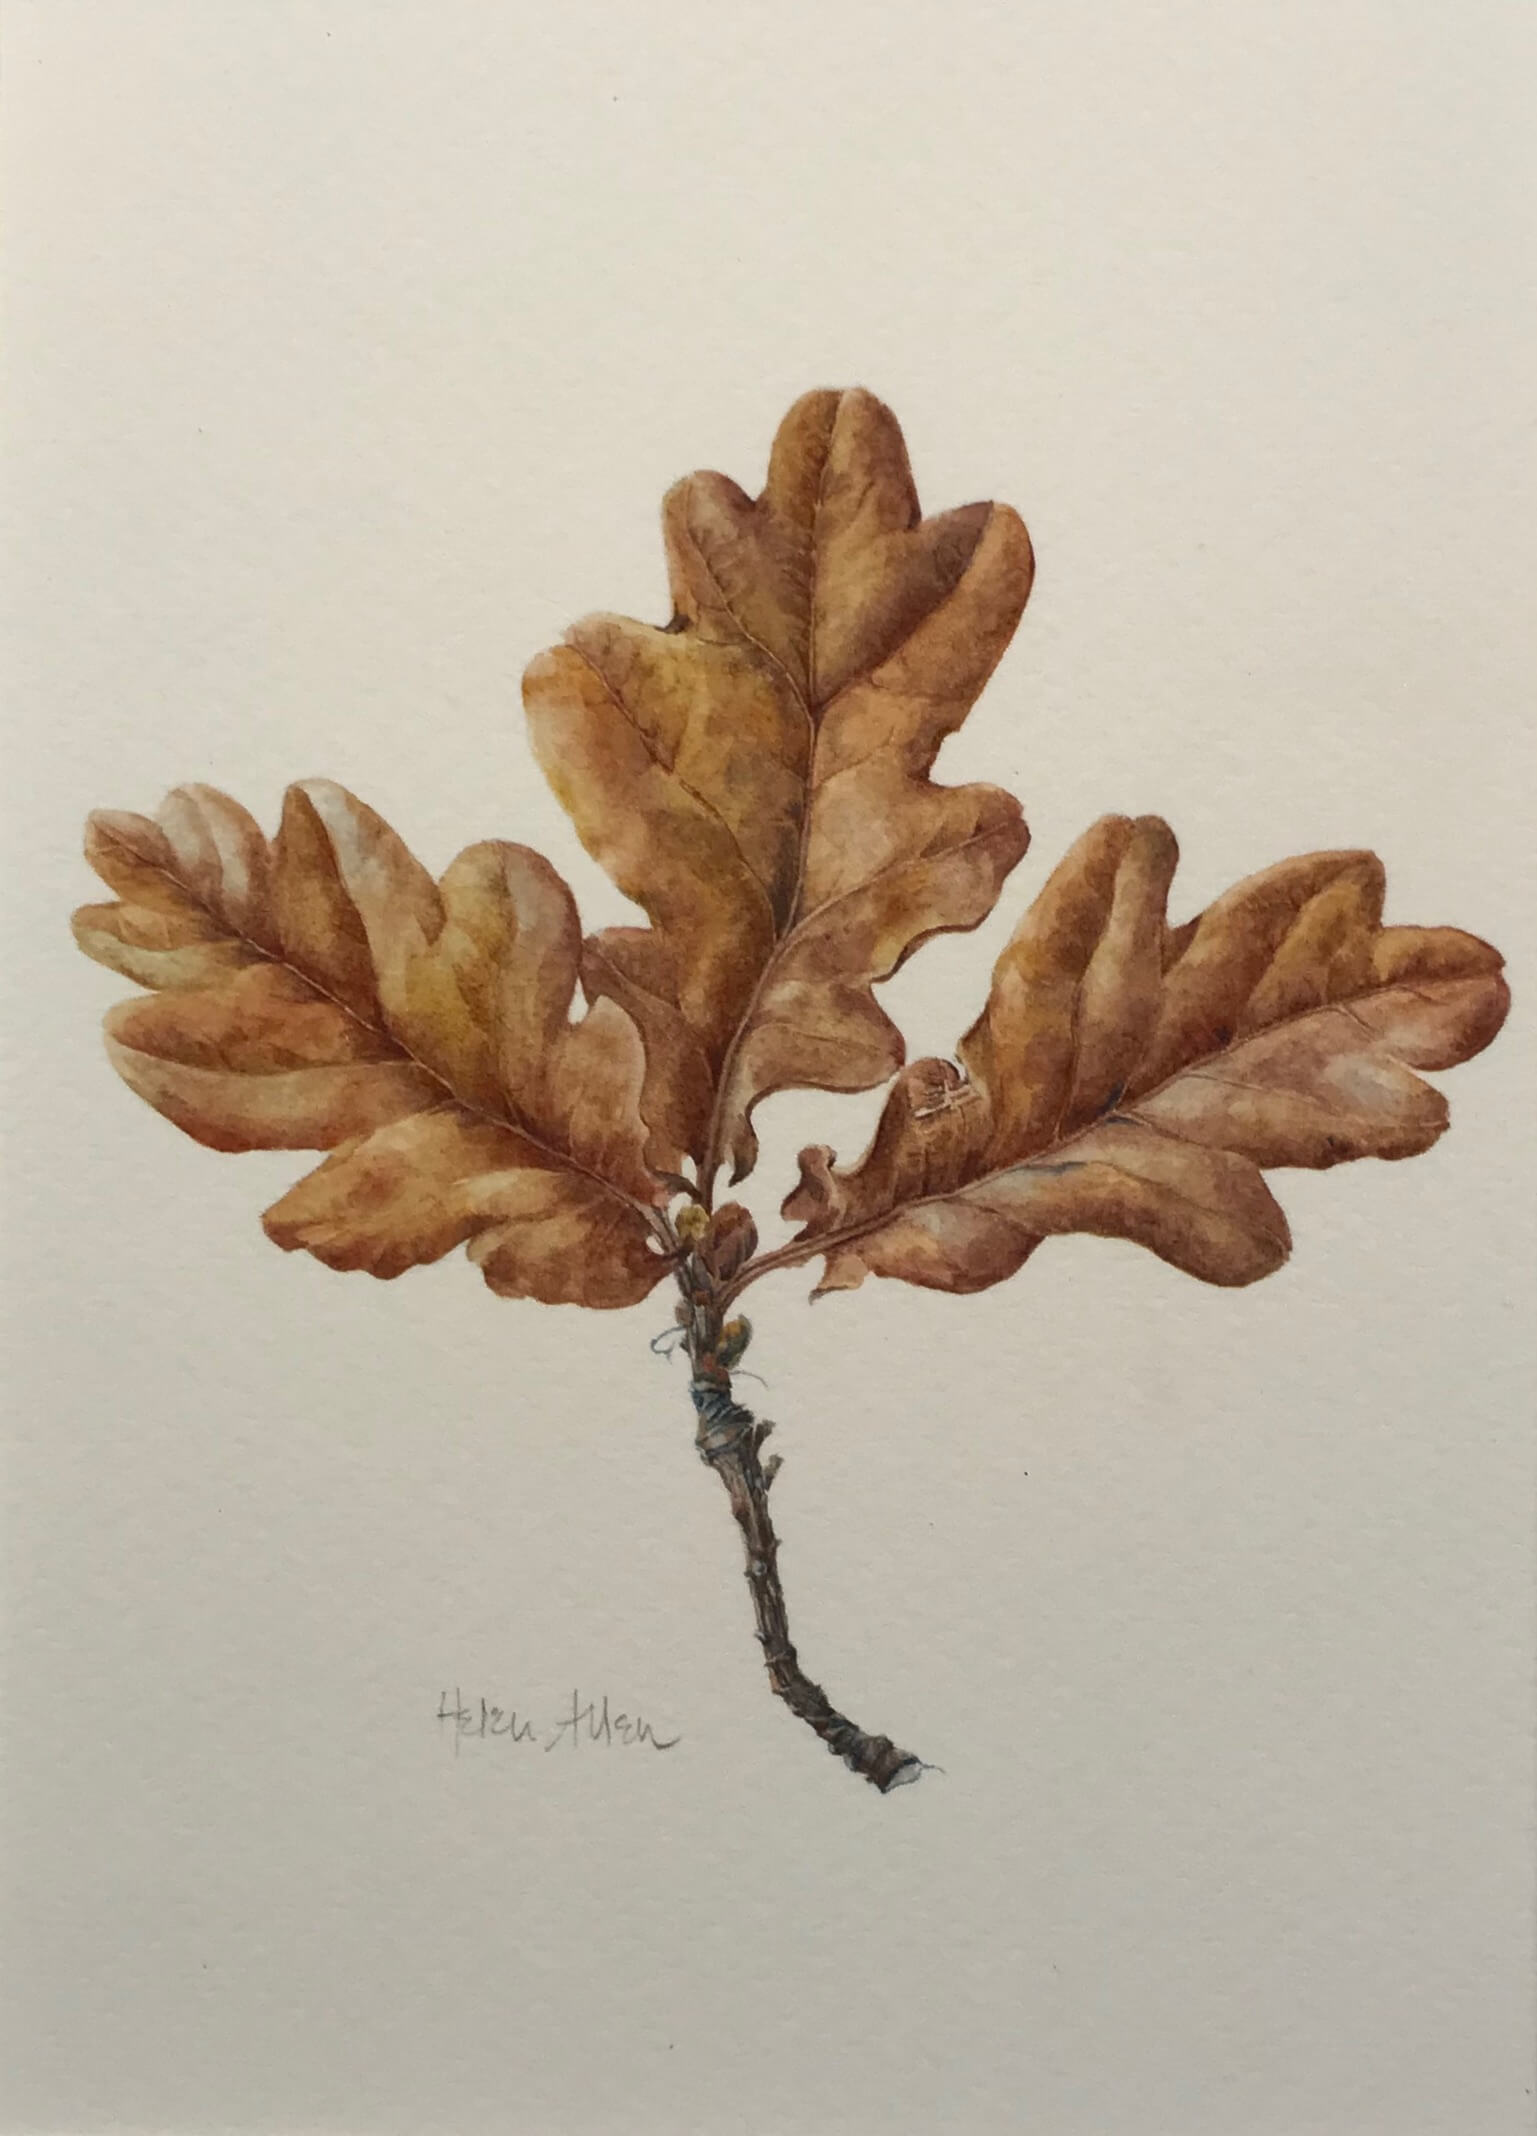 Botanical drawing of an oak leaf by artist Helen Allen - Art Tutor Clos Mirabel Painting Holidays France.